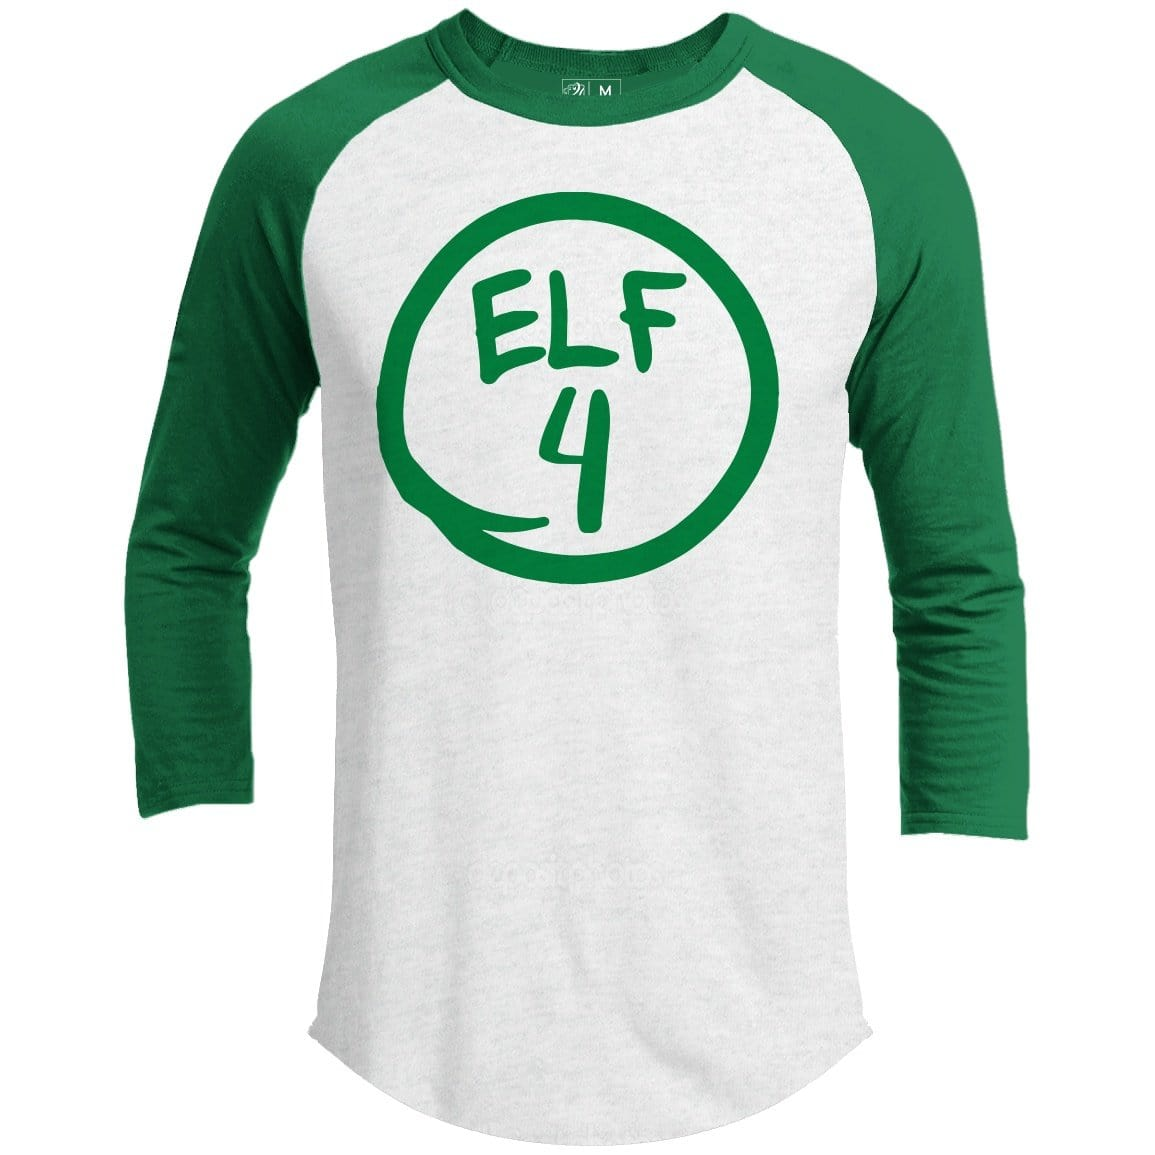 Elf 4 Premium Group Christmas Raglan